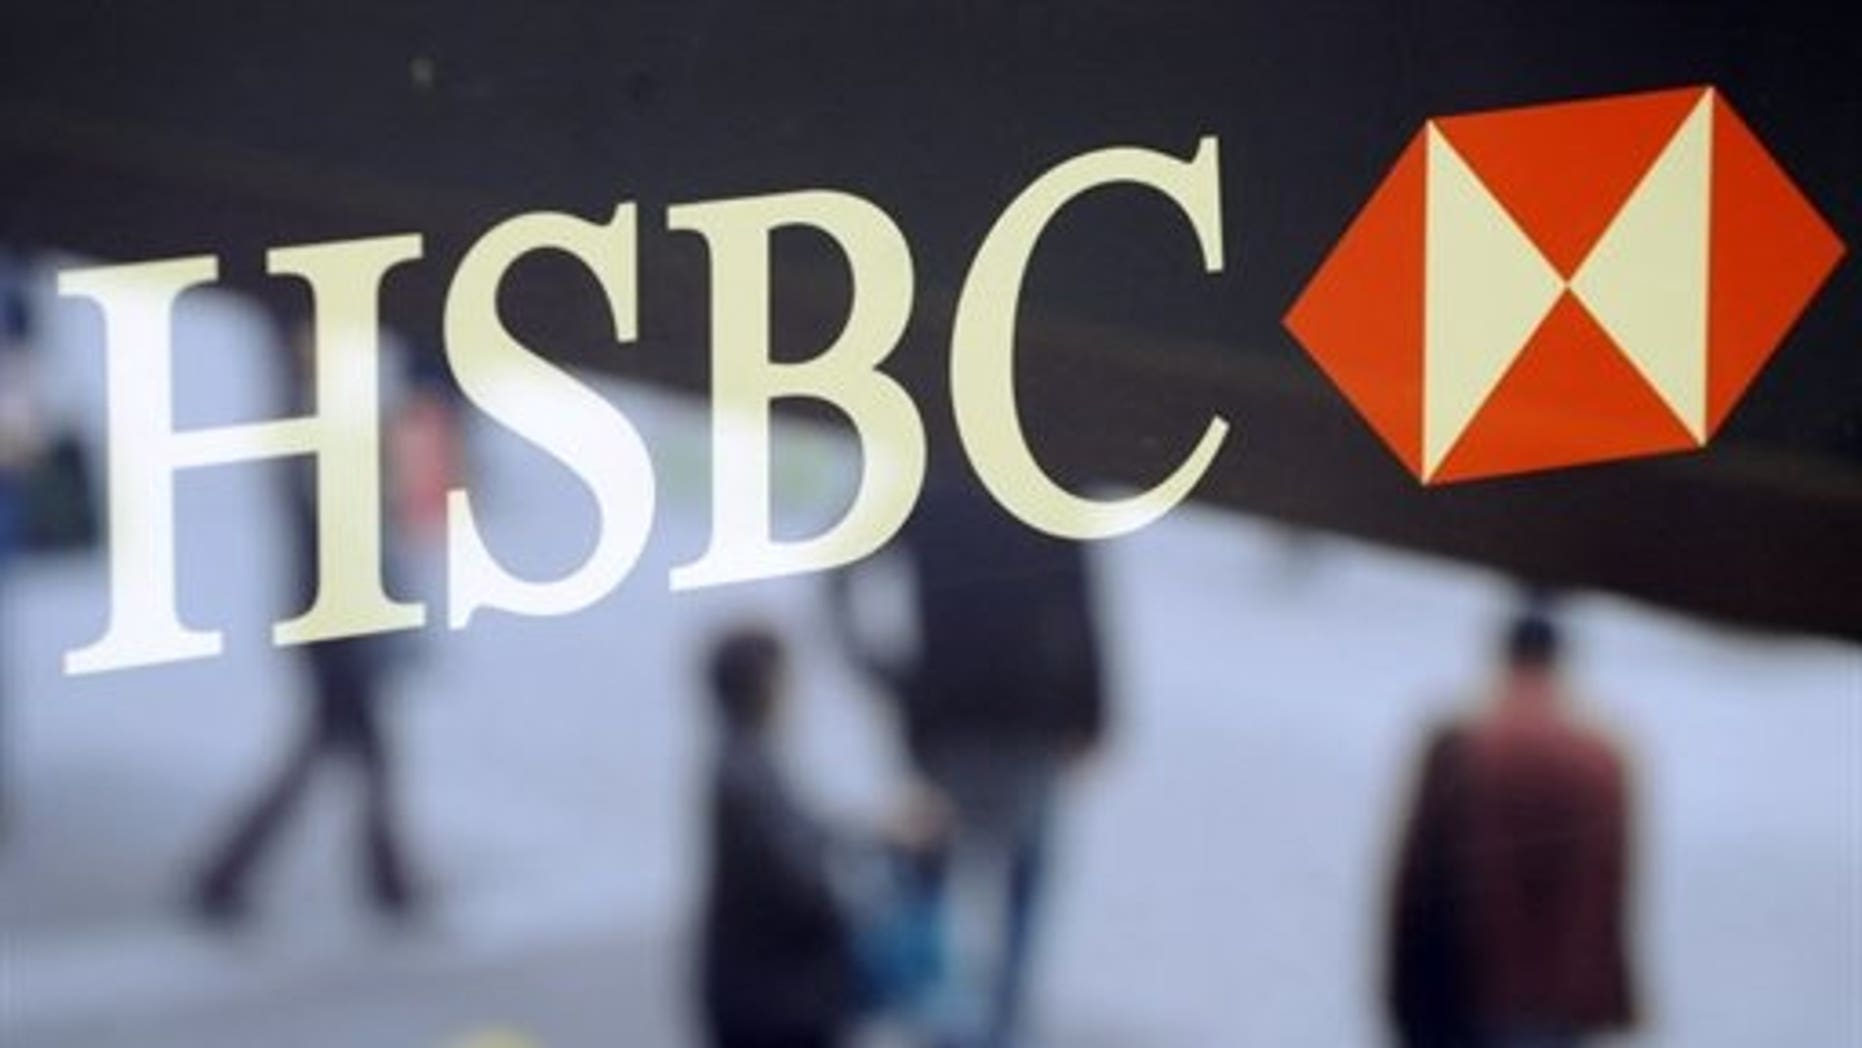 Shares in global banking giant HSBC fell almost five percent Tuesday after its interim results fell short of analysts' expectations.